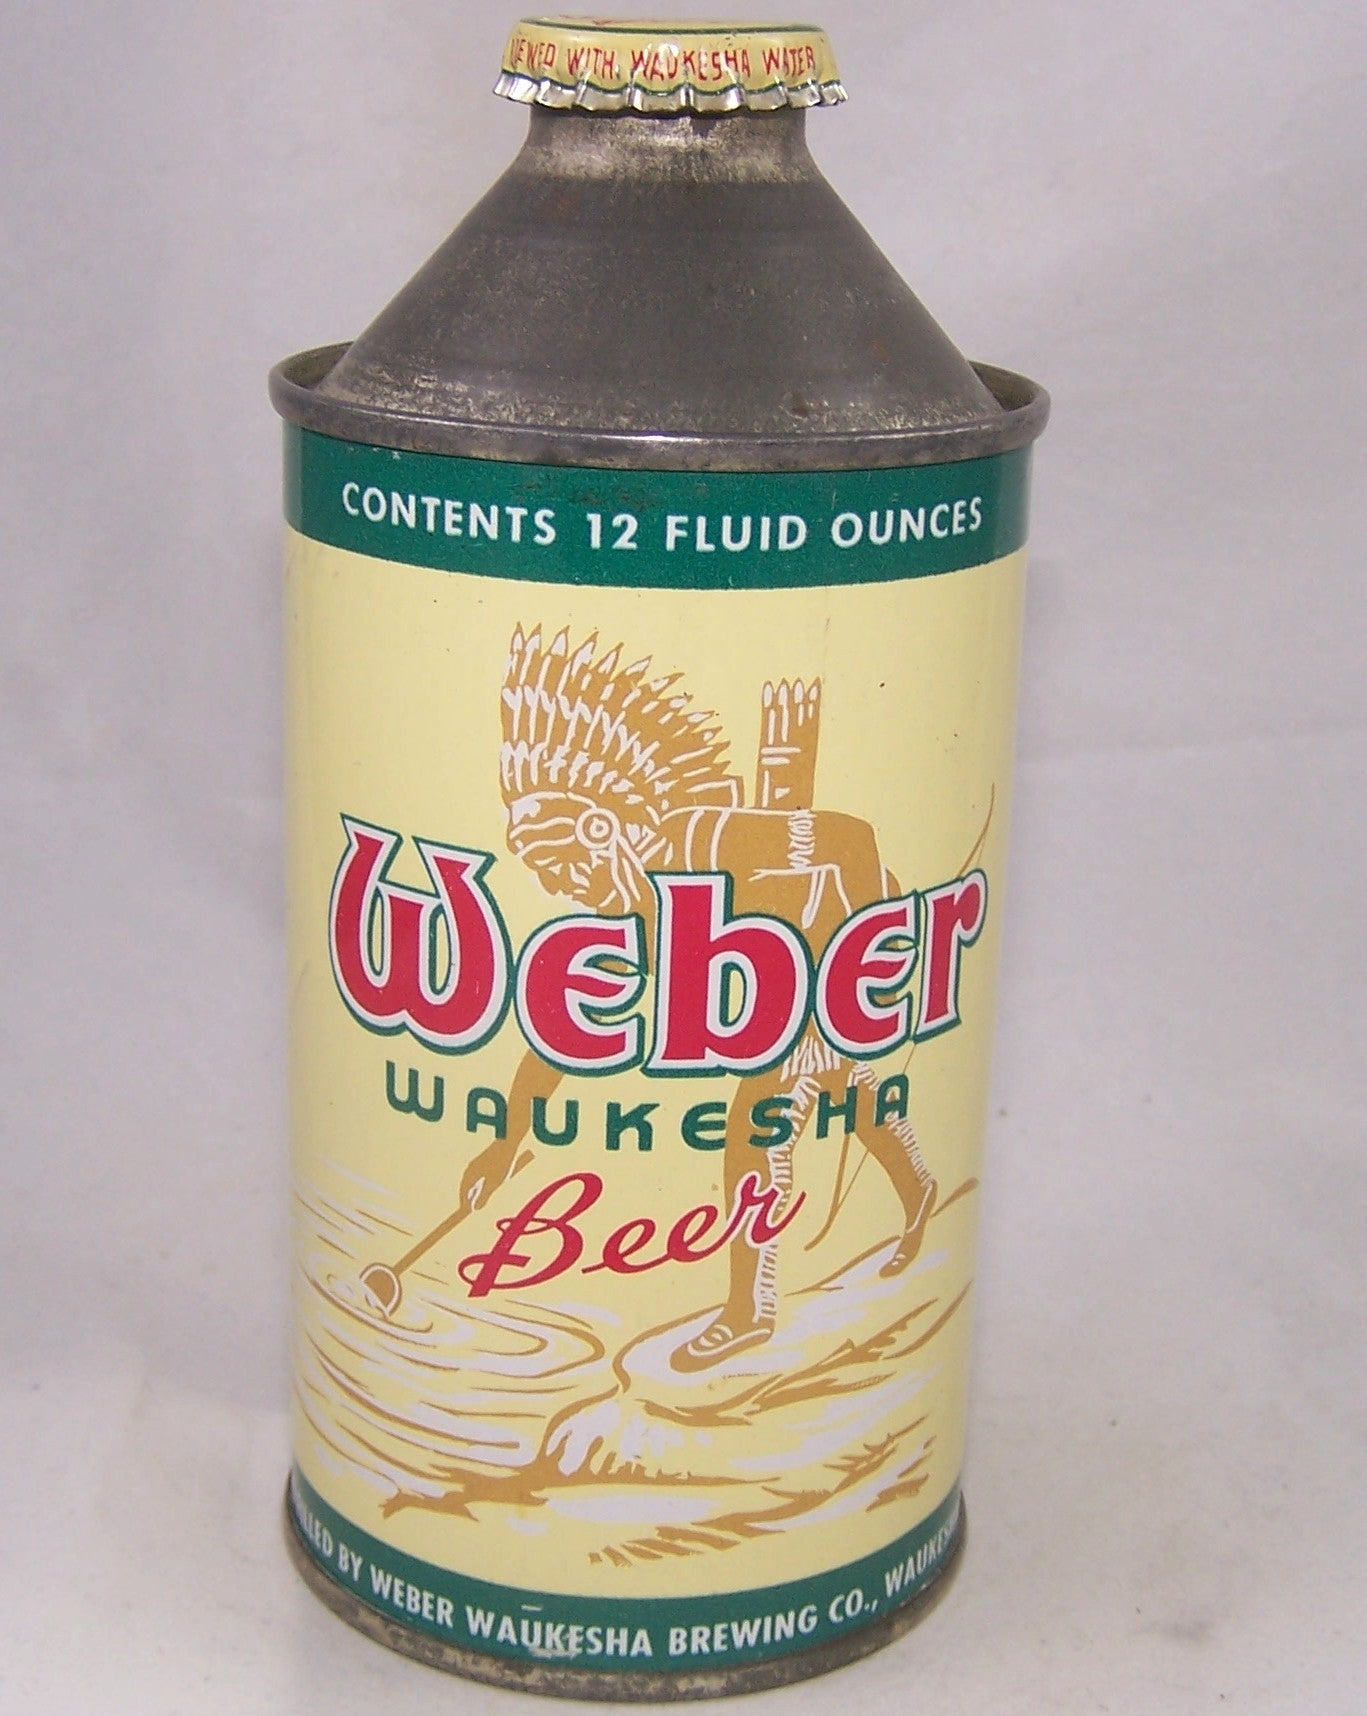 Weber Waukesha Beer, USBC 188-29, Grade A1+ Sold on 04/28/17